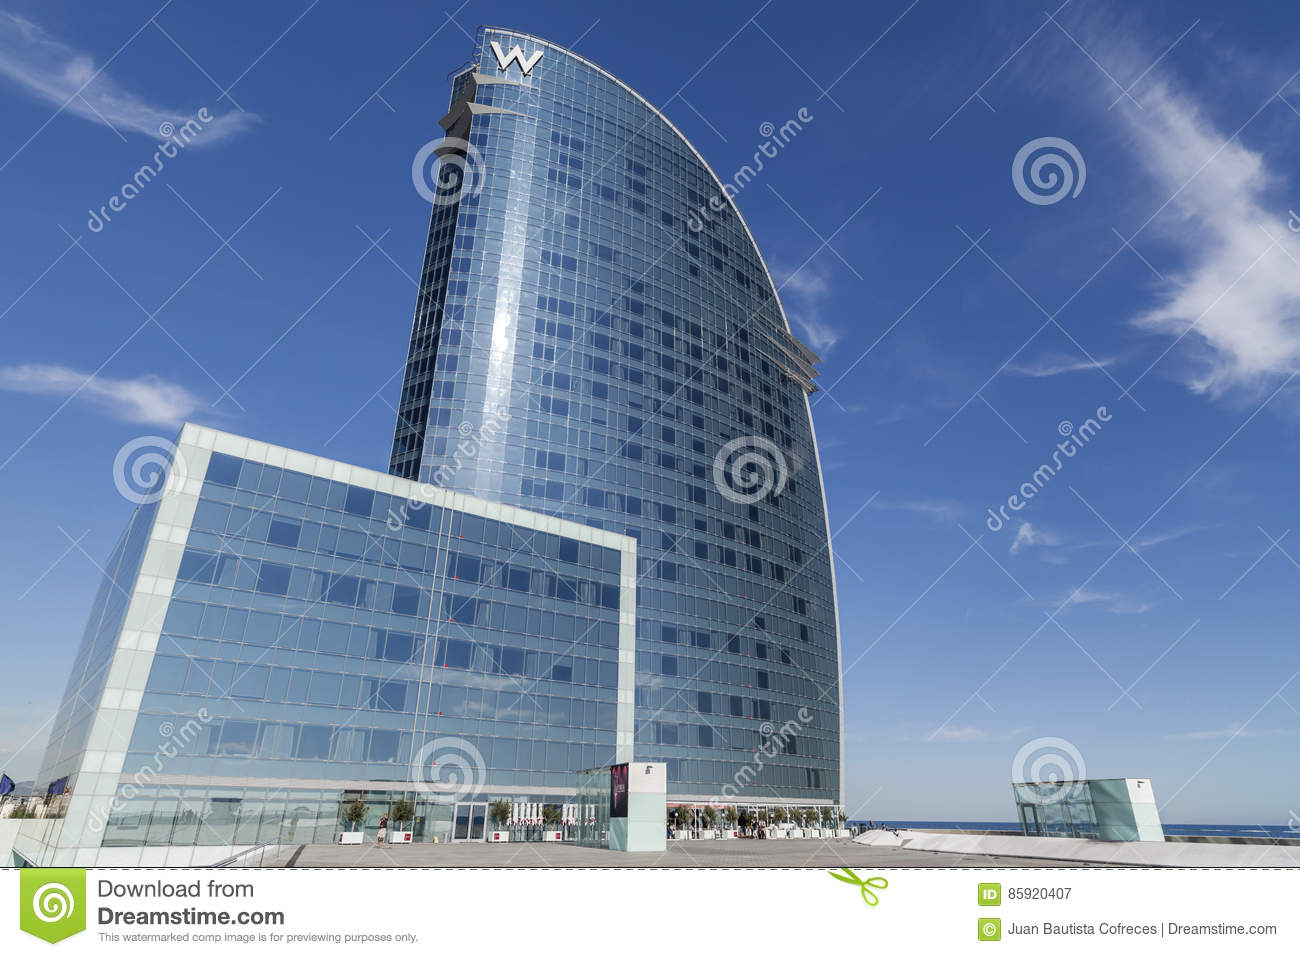 Modern Architecture, Hotel W Or Hotel Vela, By Architect Ricard.